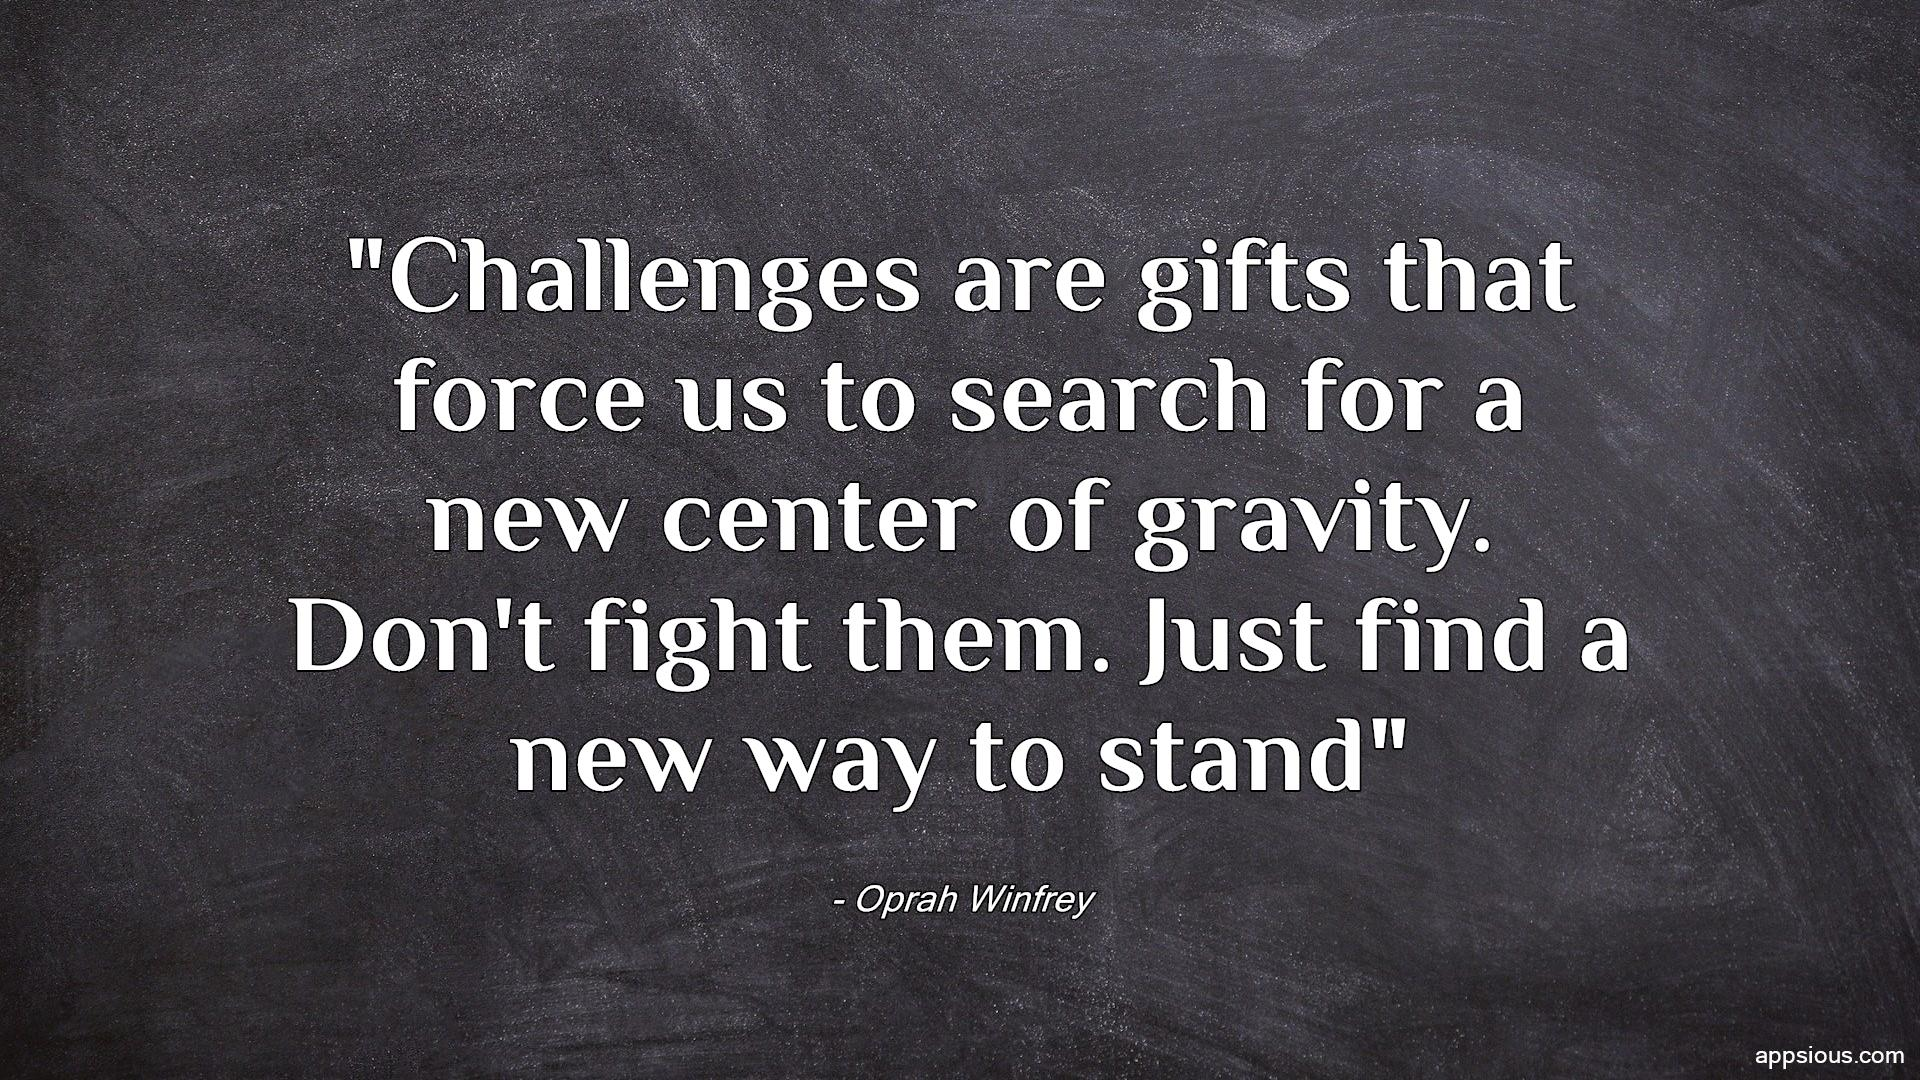 Challenges are gifts that force us to search for a new center of gravity. Don't fight them. Just find a new way to stand